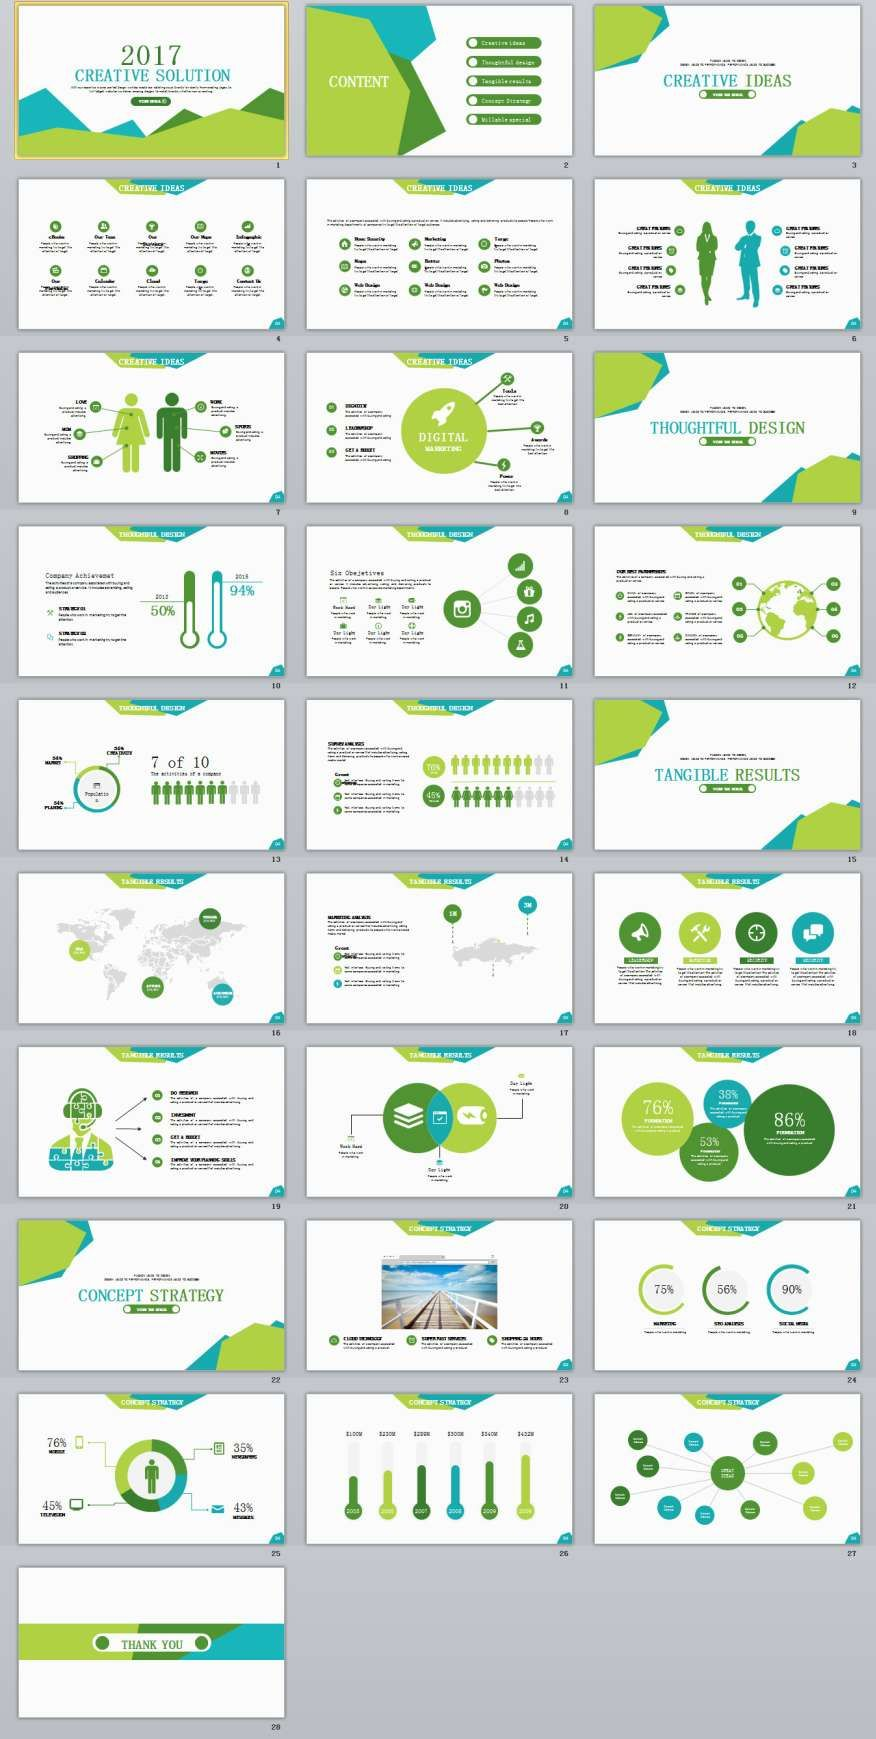 28 creative ideas powerpoint template 28 creative ideas powerpoint template the highest quality powerpoint templates and keynote templates download toneelgroepblik Gallery